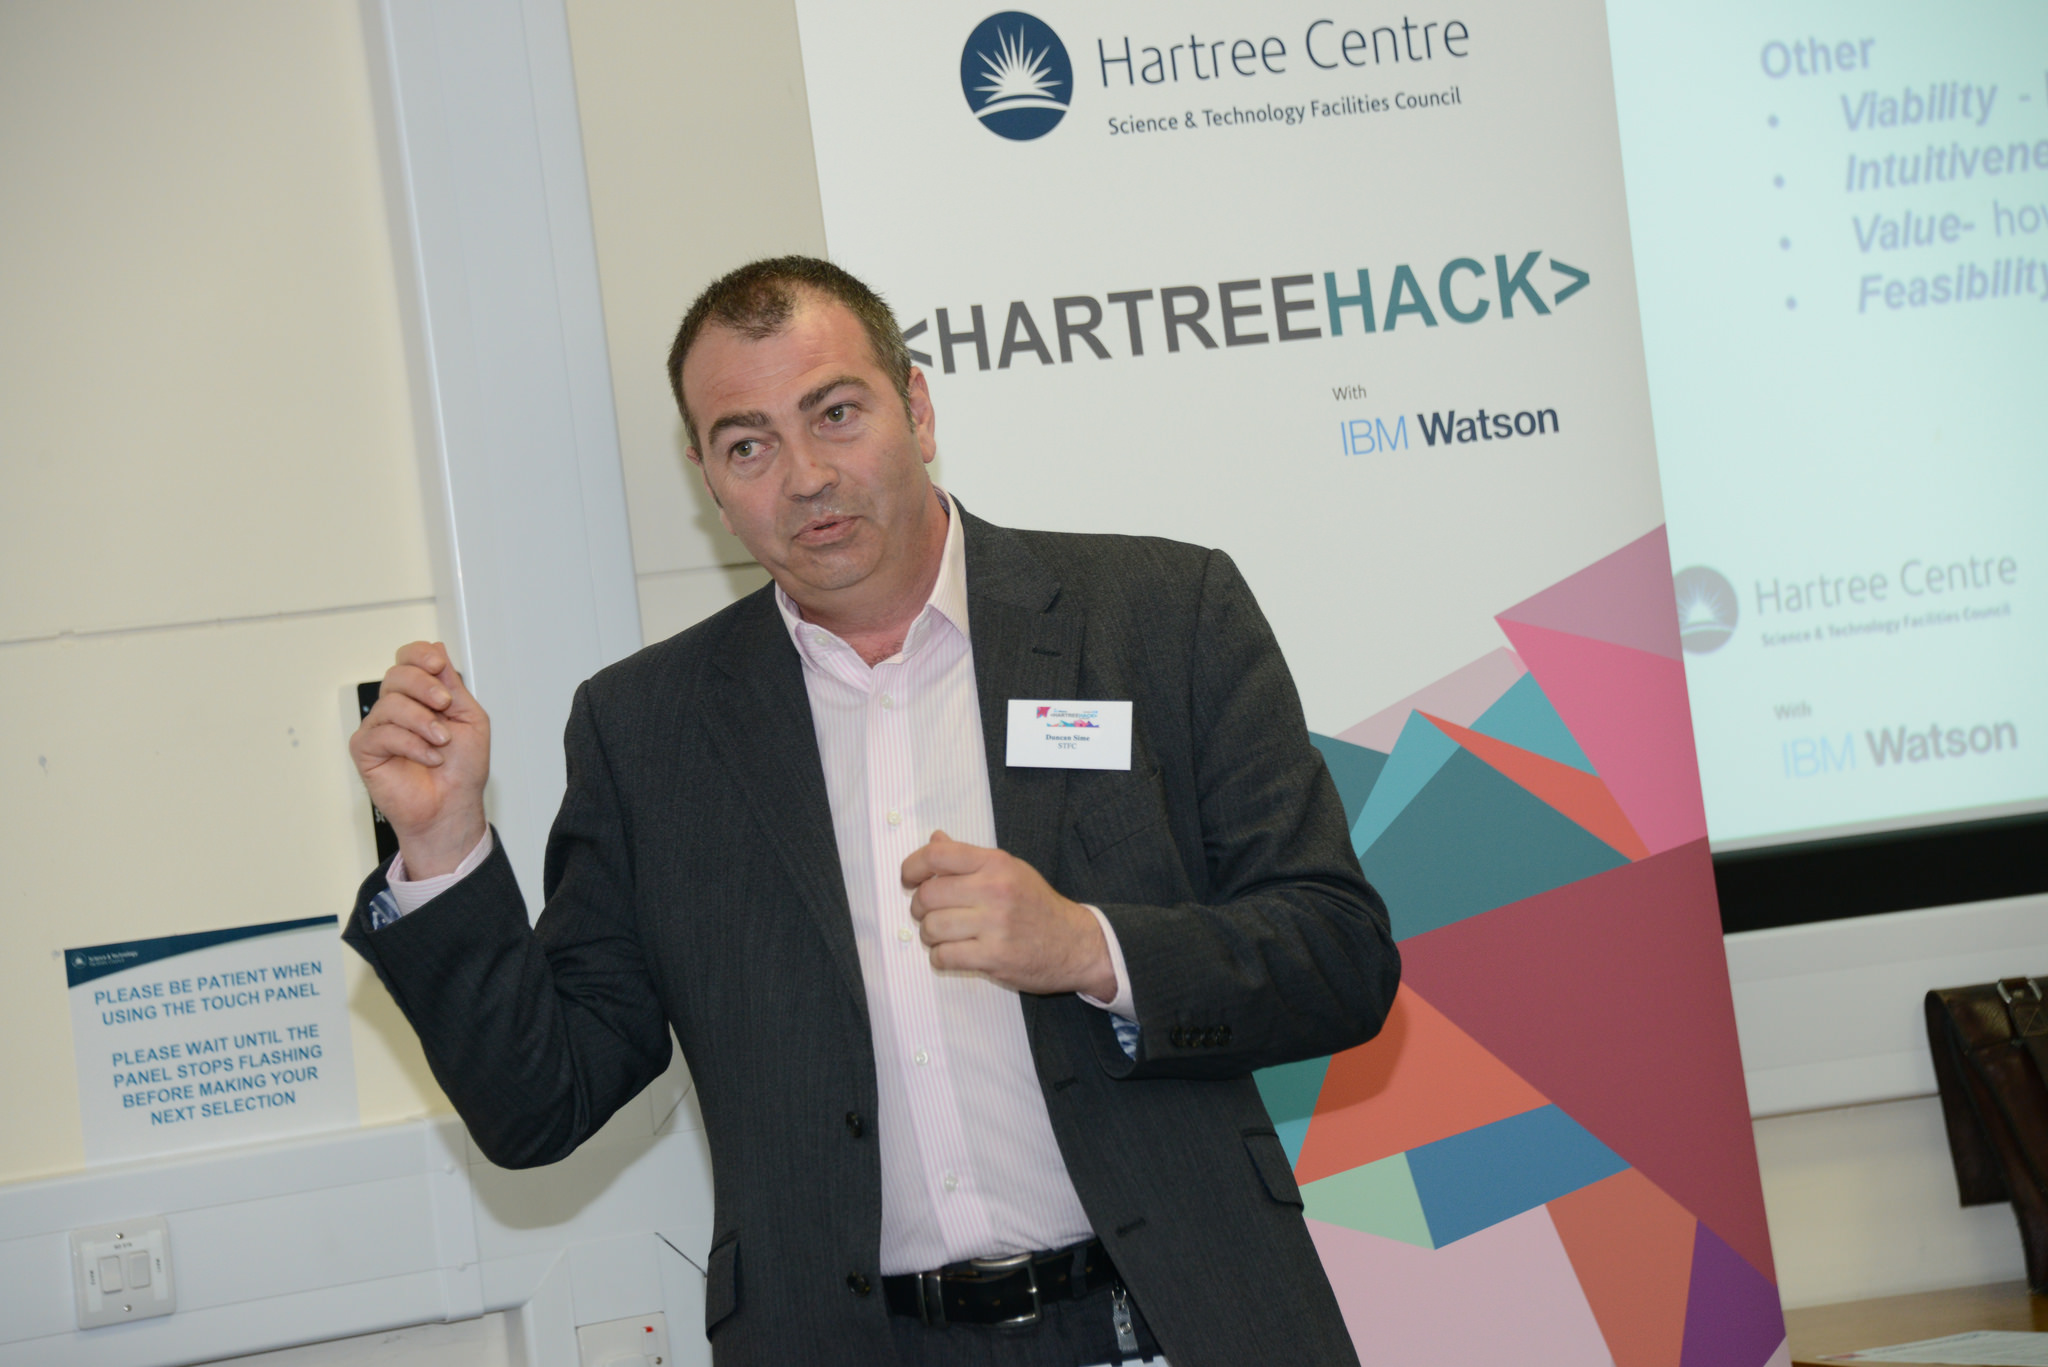 Duncan Sime introducing the Hartree Centre at the Hartree Hack